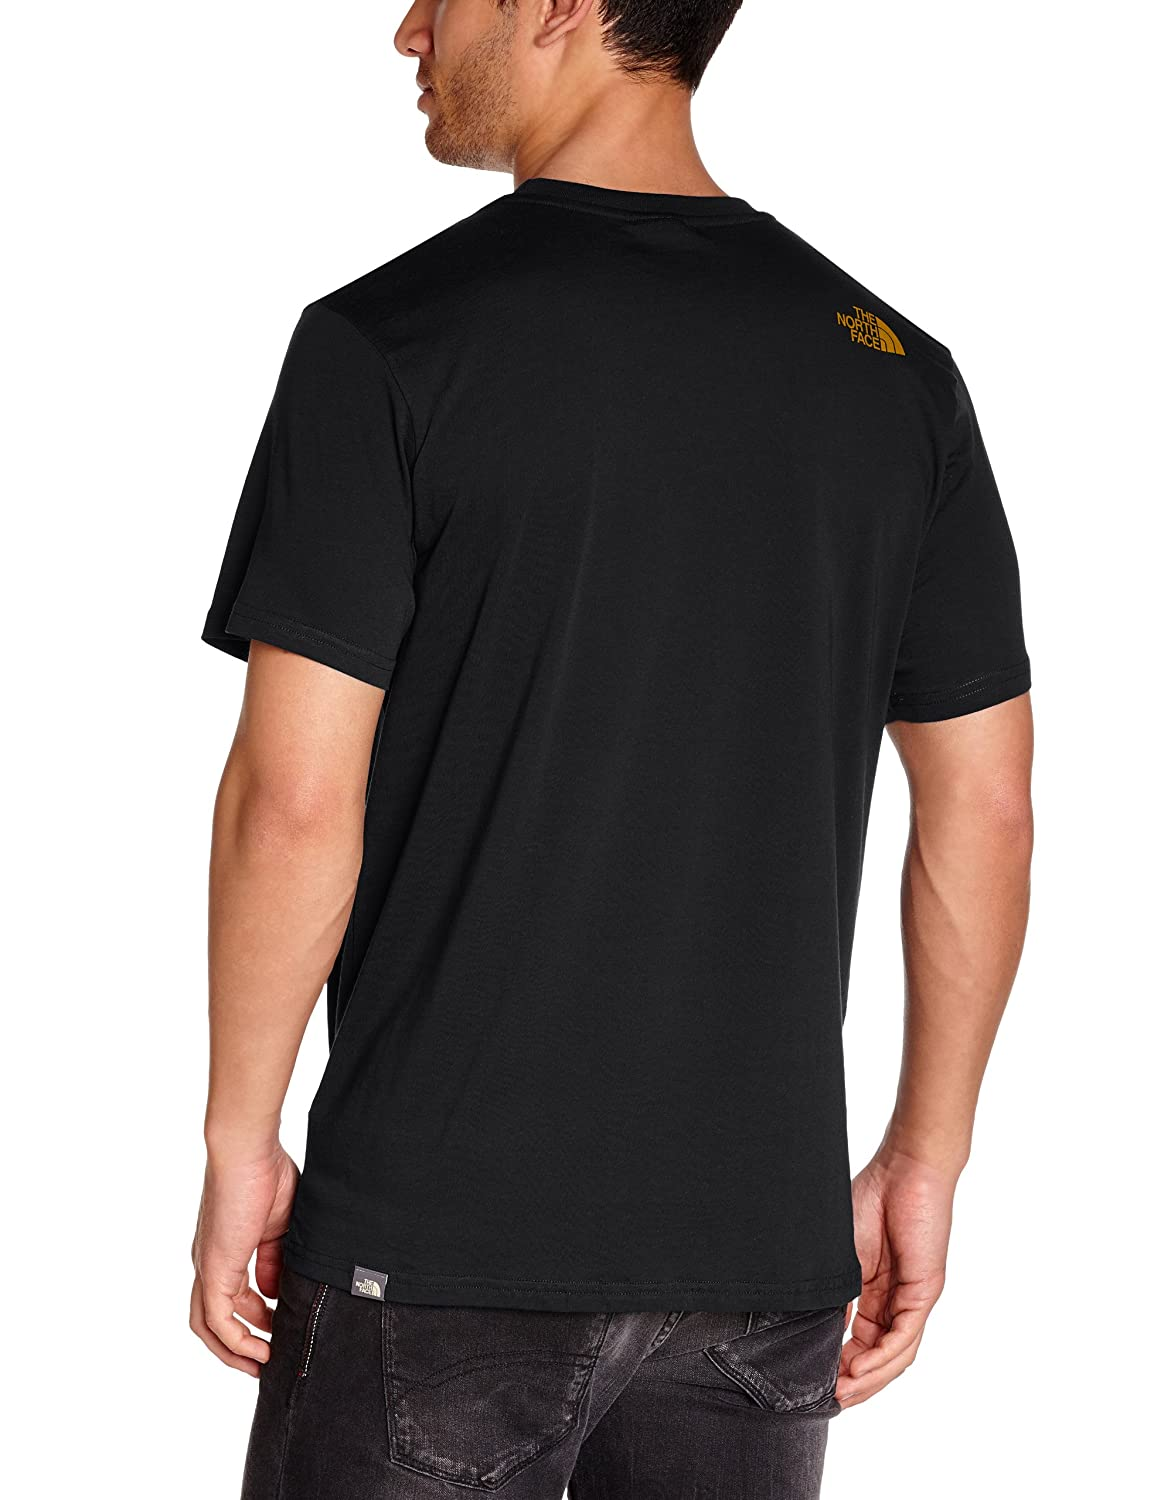 Black t shirt collar - The North Face Men S Short Sleeve Simple Dome T Shirt Amazon Co Uk Sports Outdoors